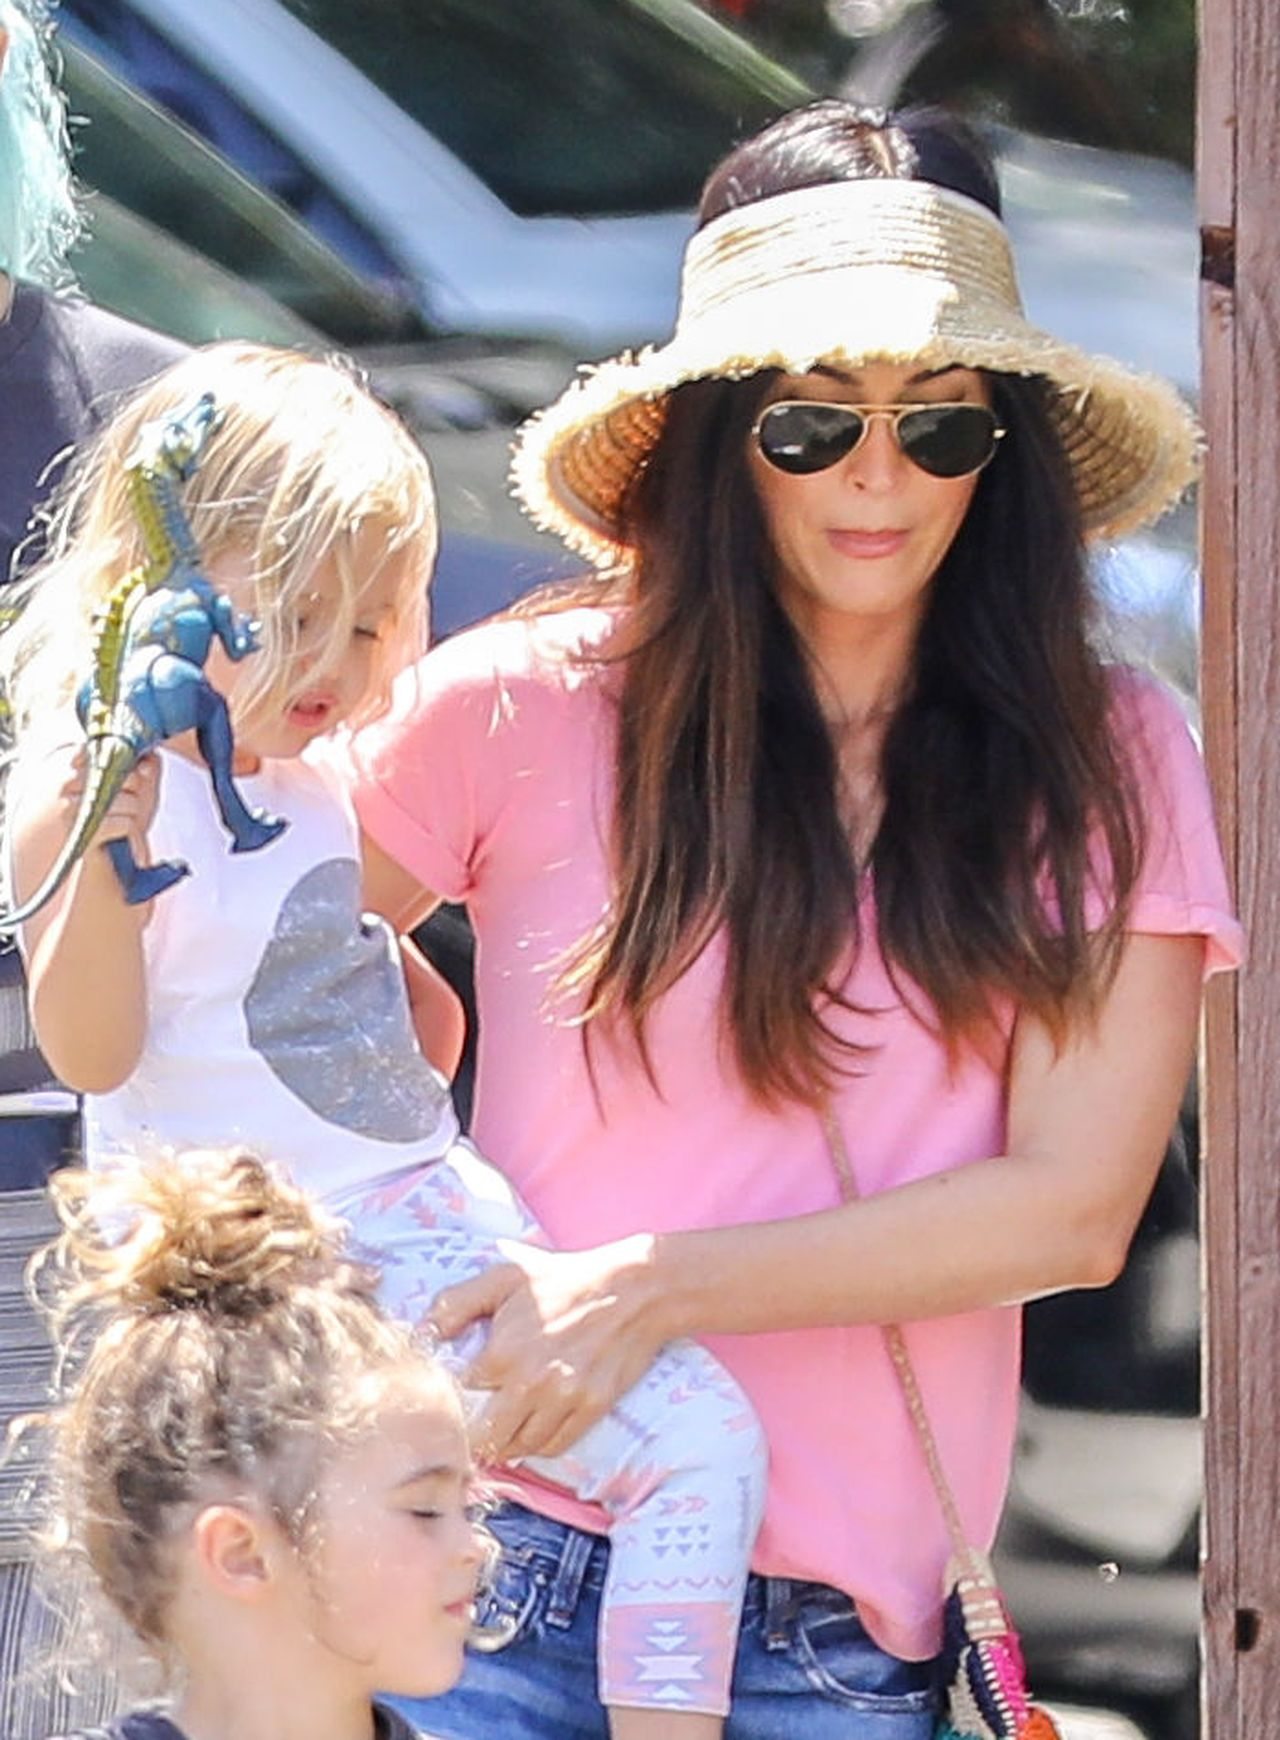 PREMIUM EXCLUSIVE Single Megan Fox spends Mother's Day with the kids